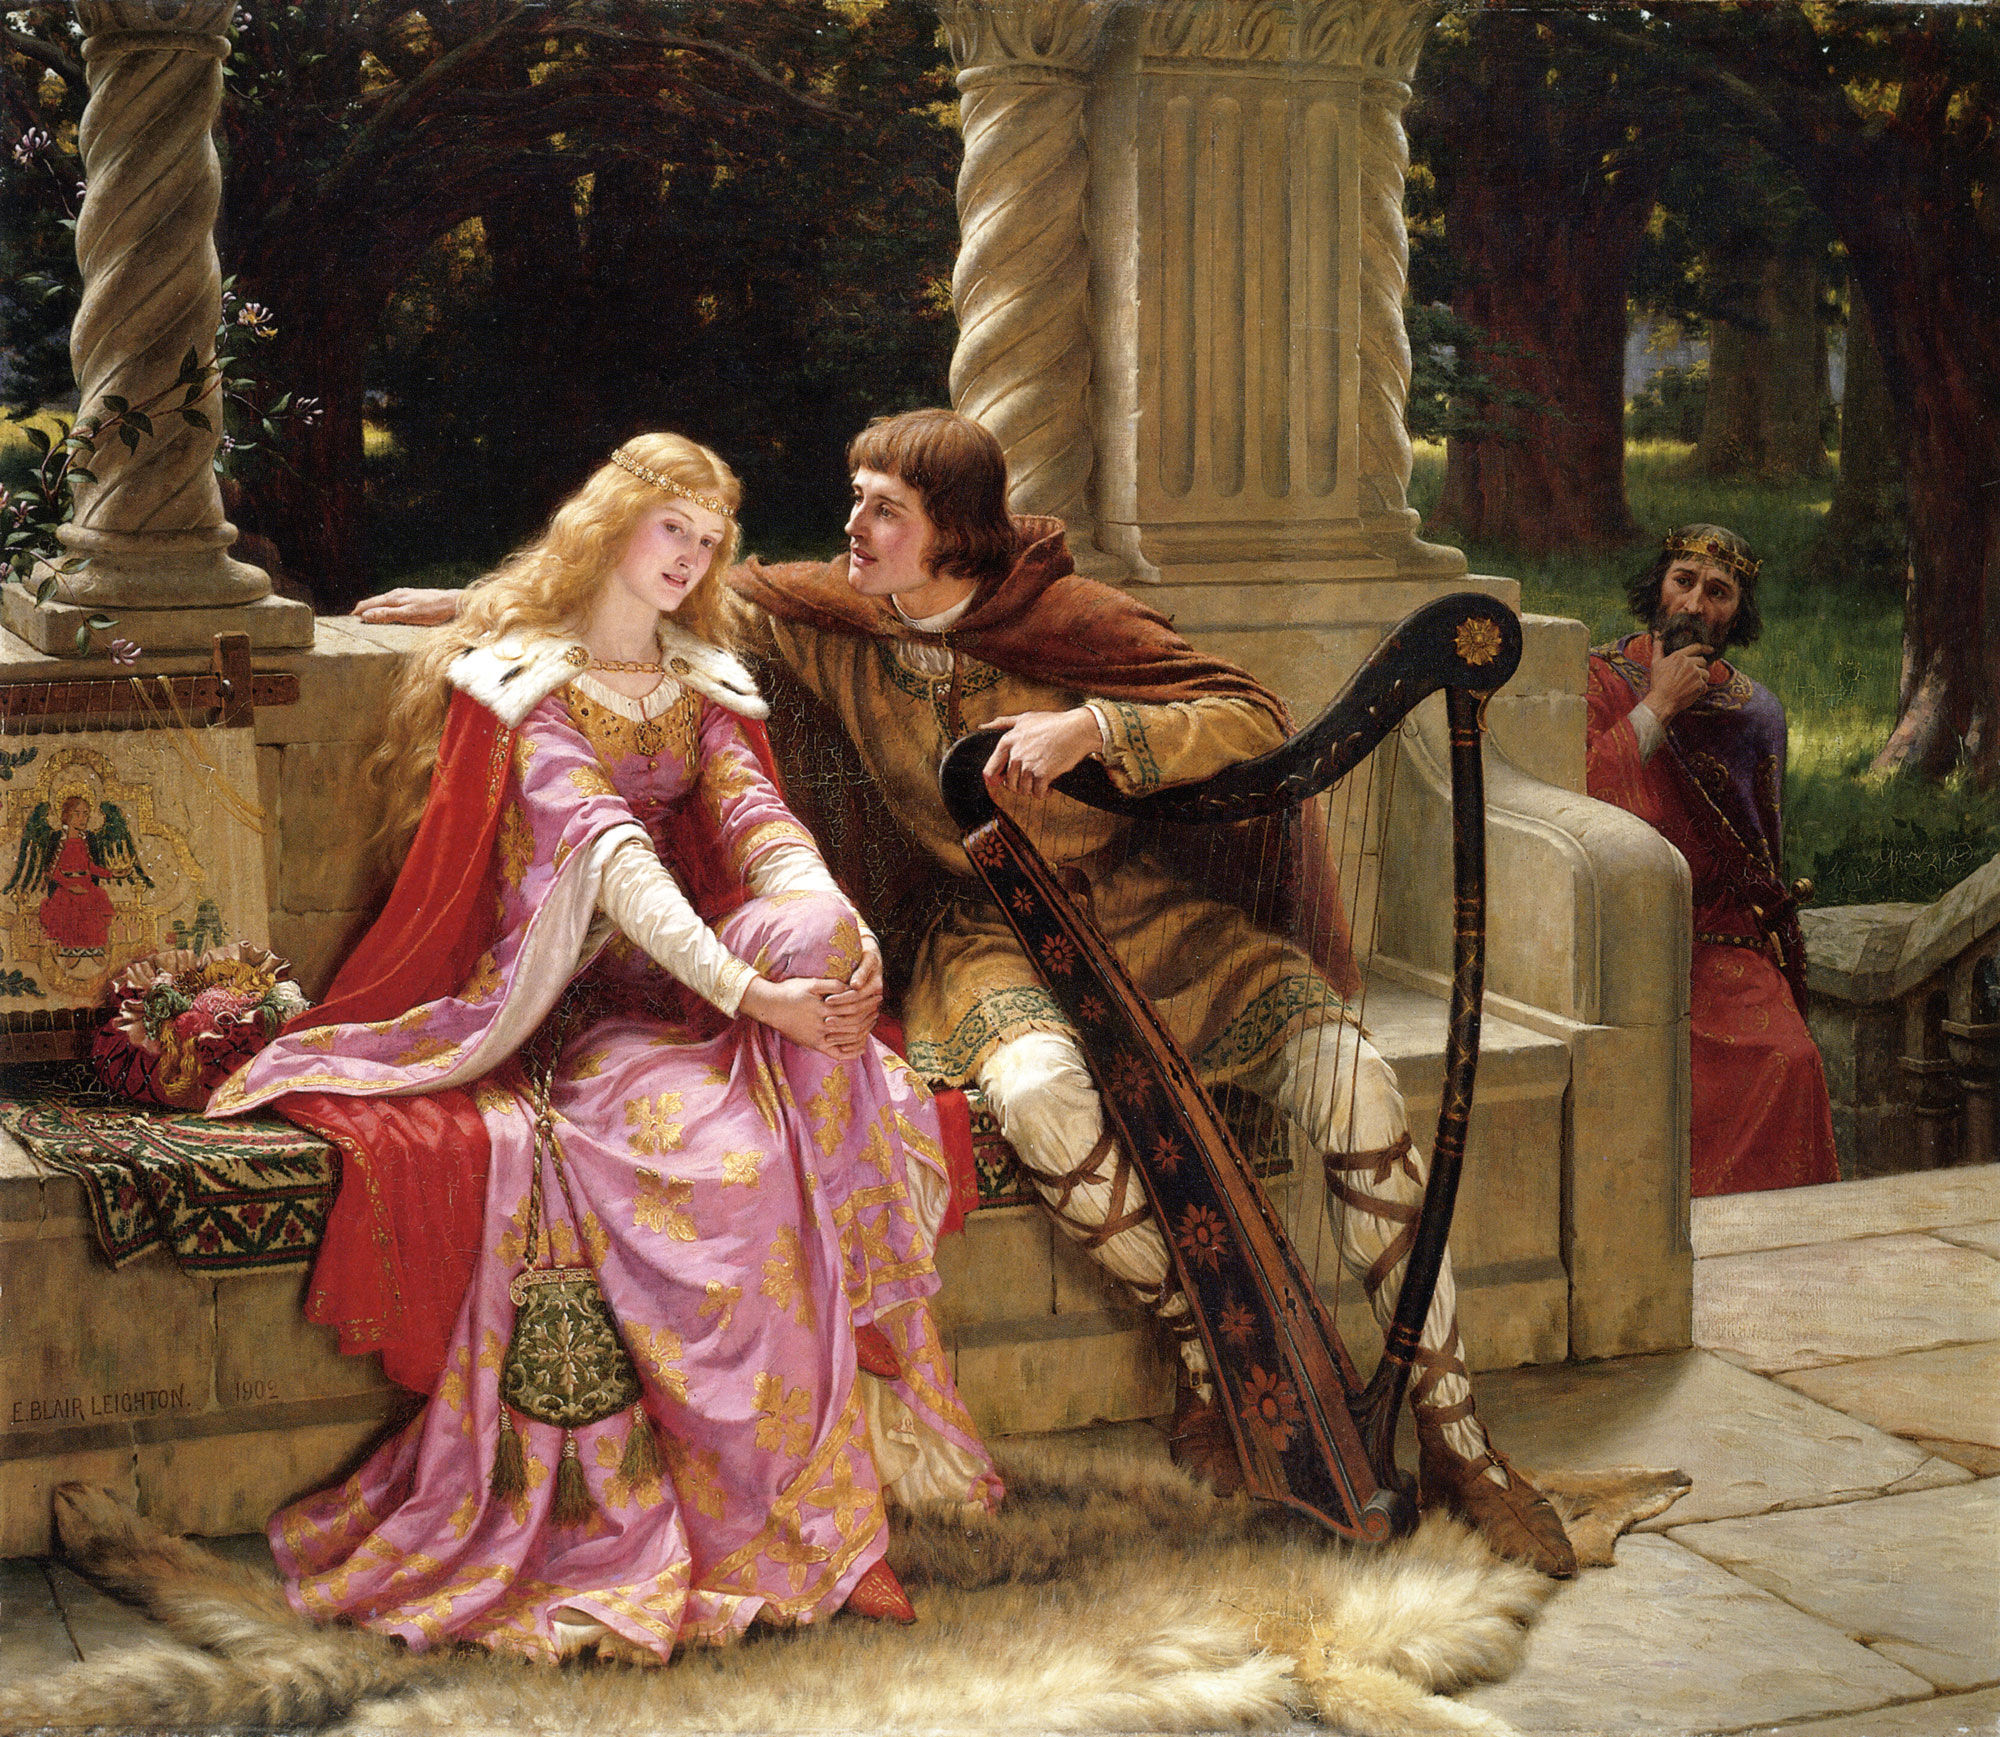 http://upload.wikimedia.org/wikipedia/commons/b/bb/Leighton-Tristan_and_Isolde-1902.jpg